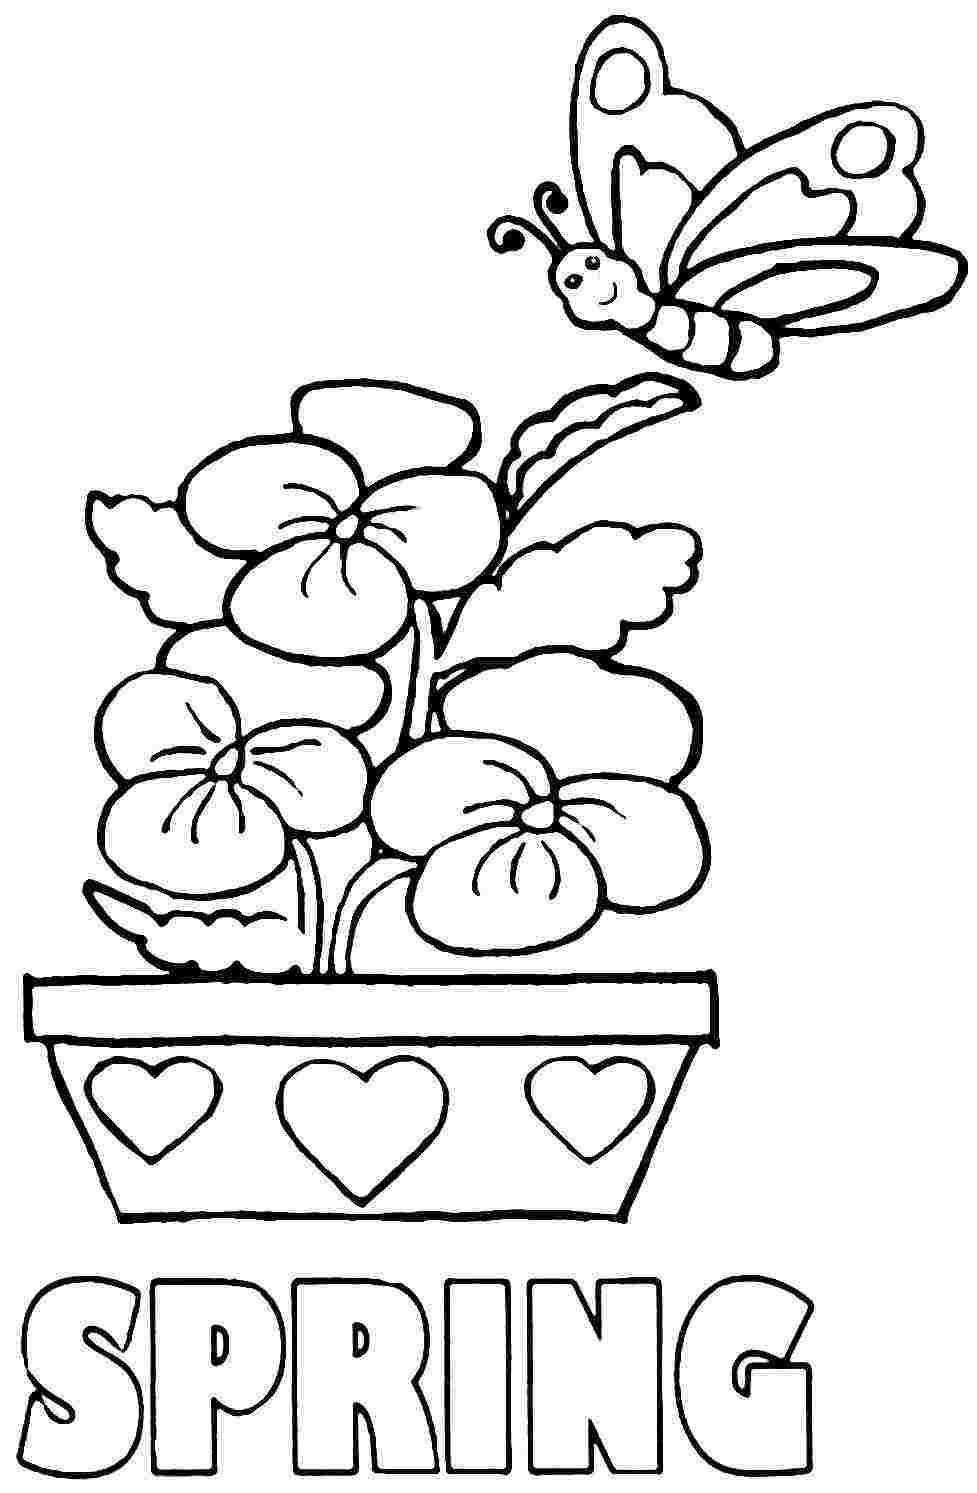 Free Coloring Pages Spring Season In 2020 Kindergarten Coloring Pages Preschool Coloring Pages Spring Coloring Sheets